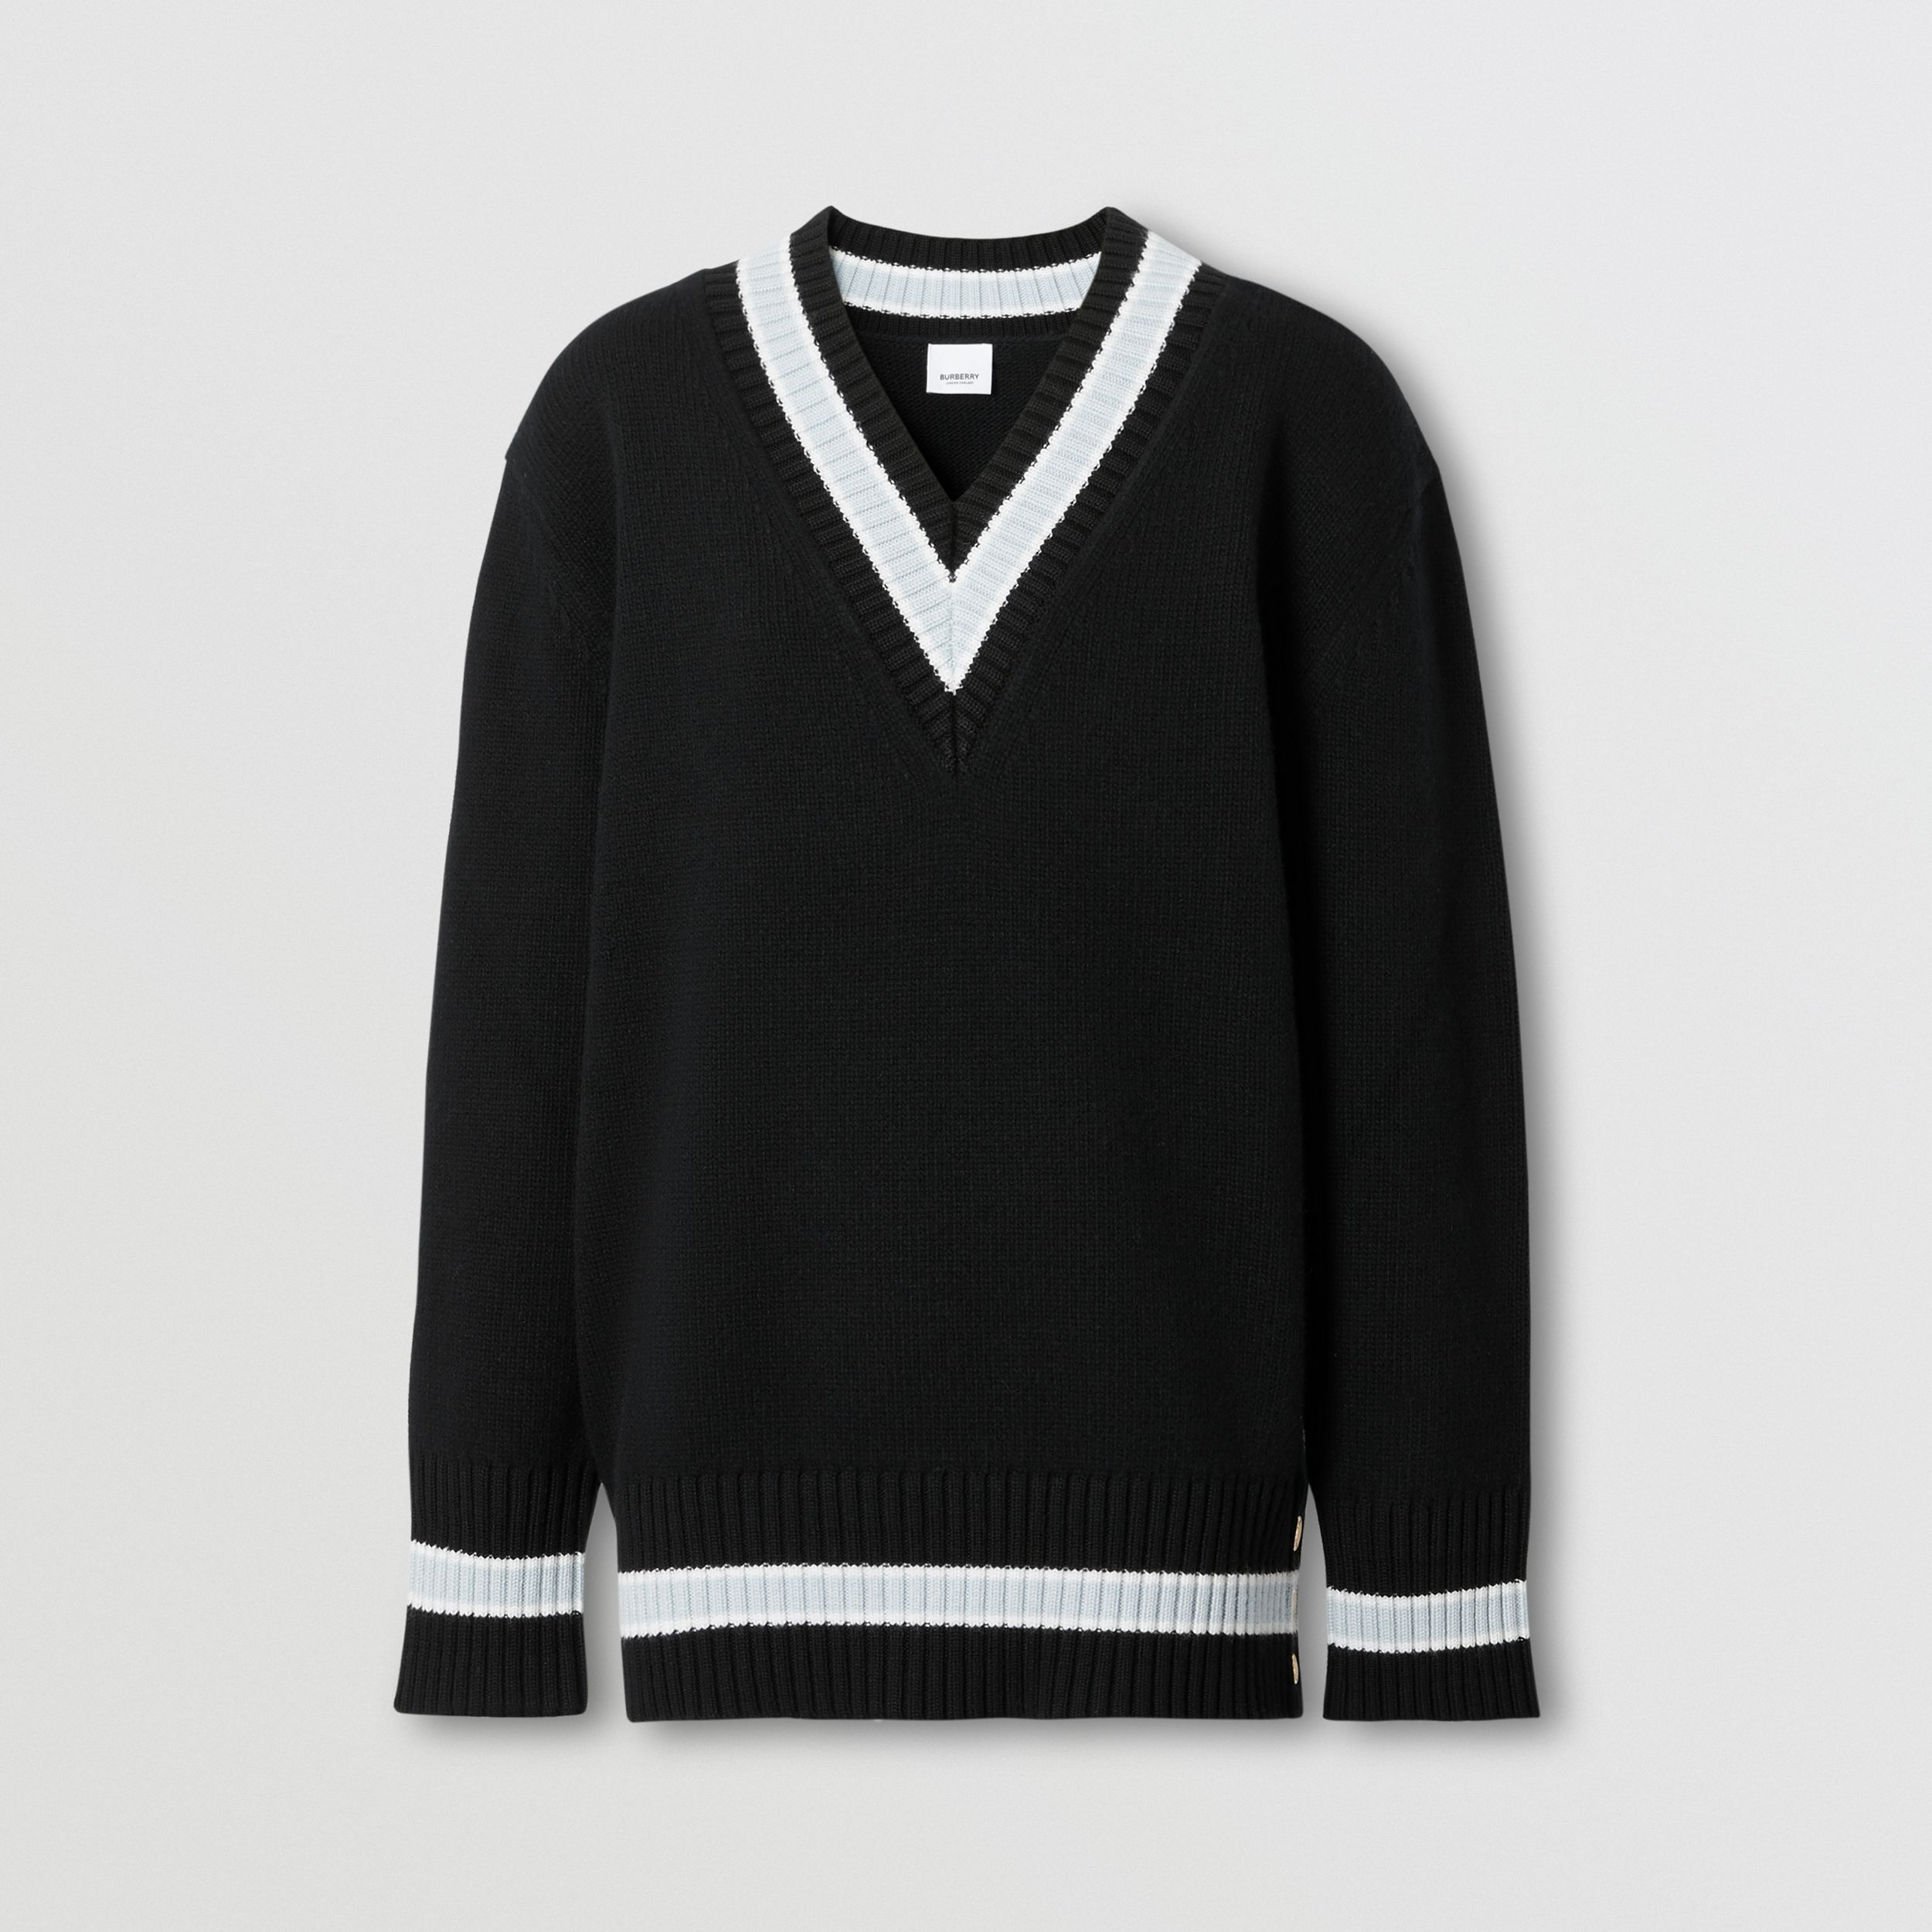 Wool Oversized Cricket Sweater in Black - Women | Burberry - 4